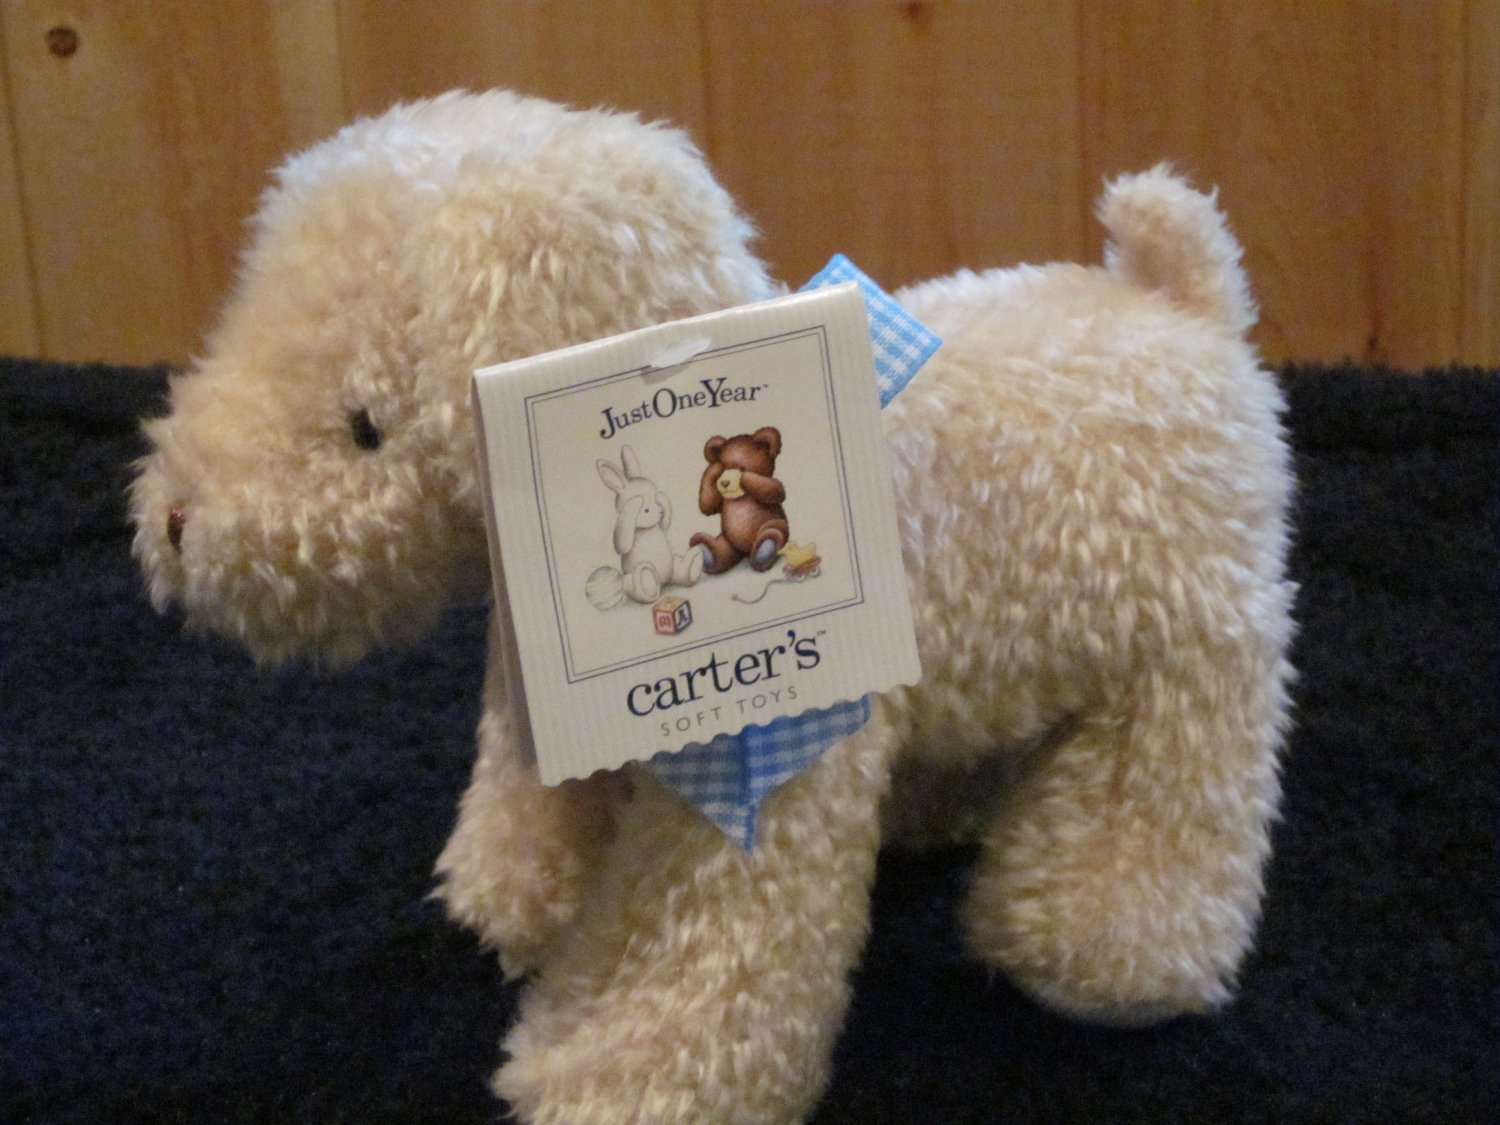 Just One Year Carters Tan Puppy Dog with Chimes Rattles